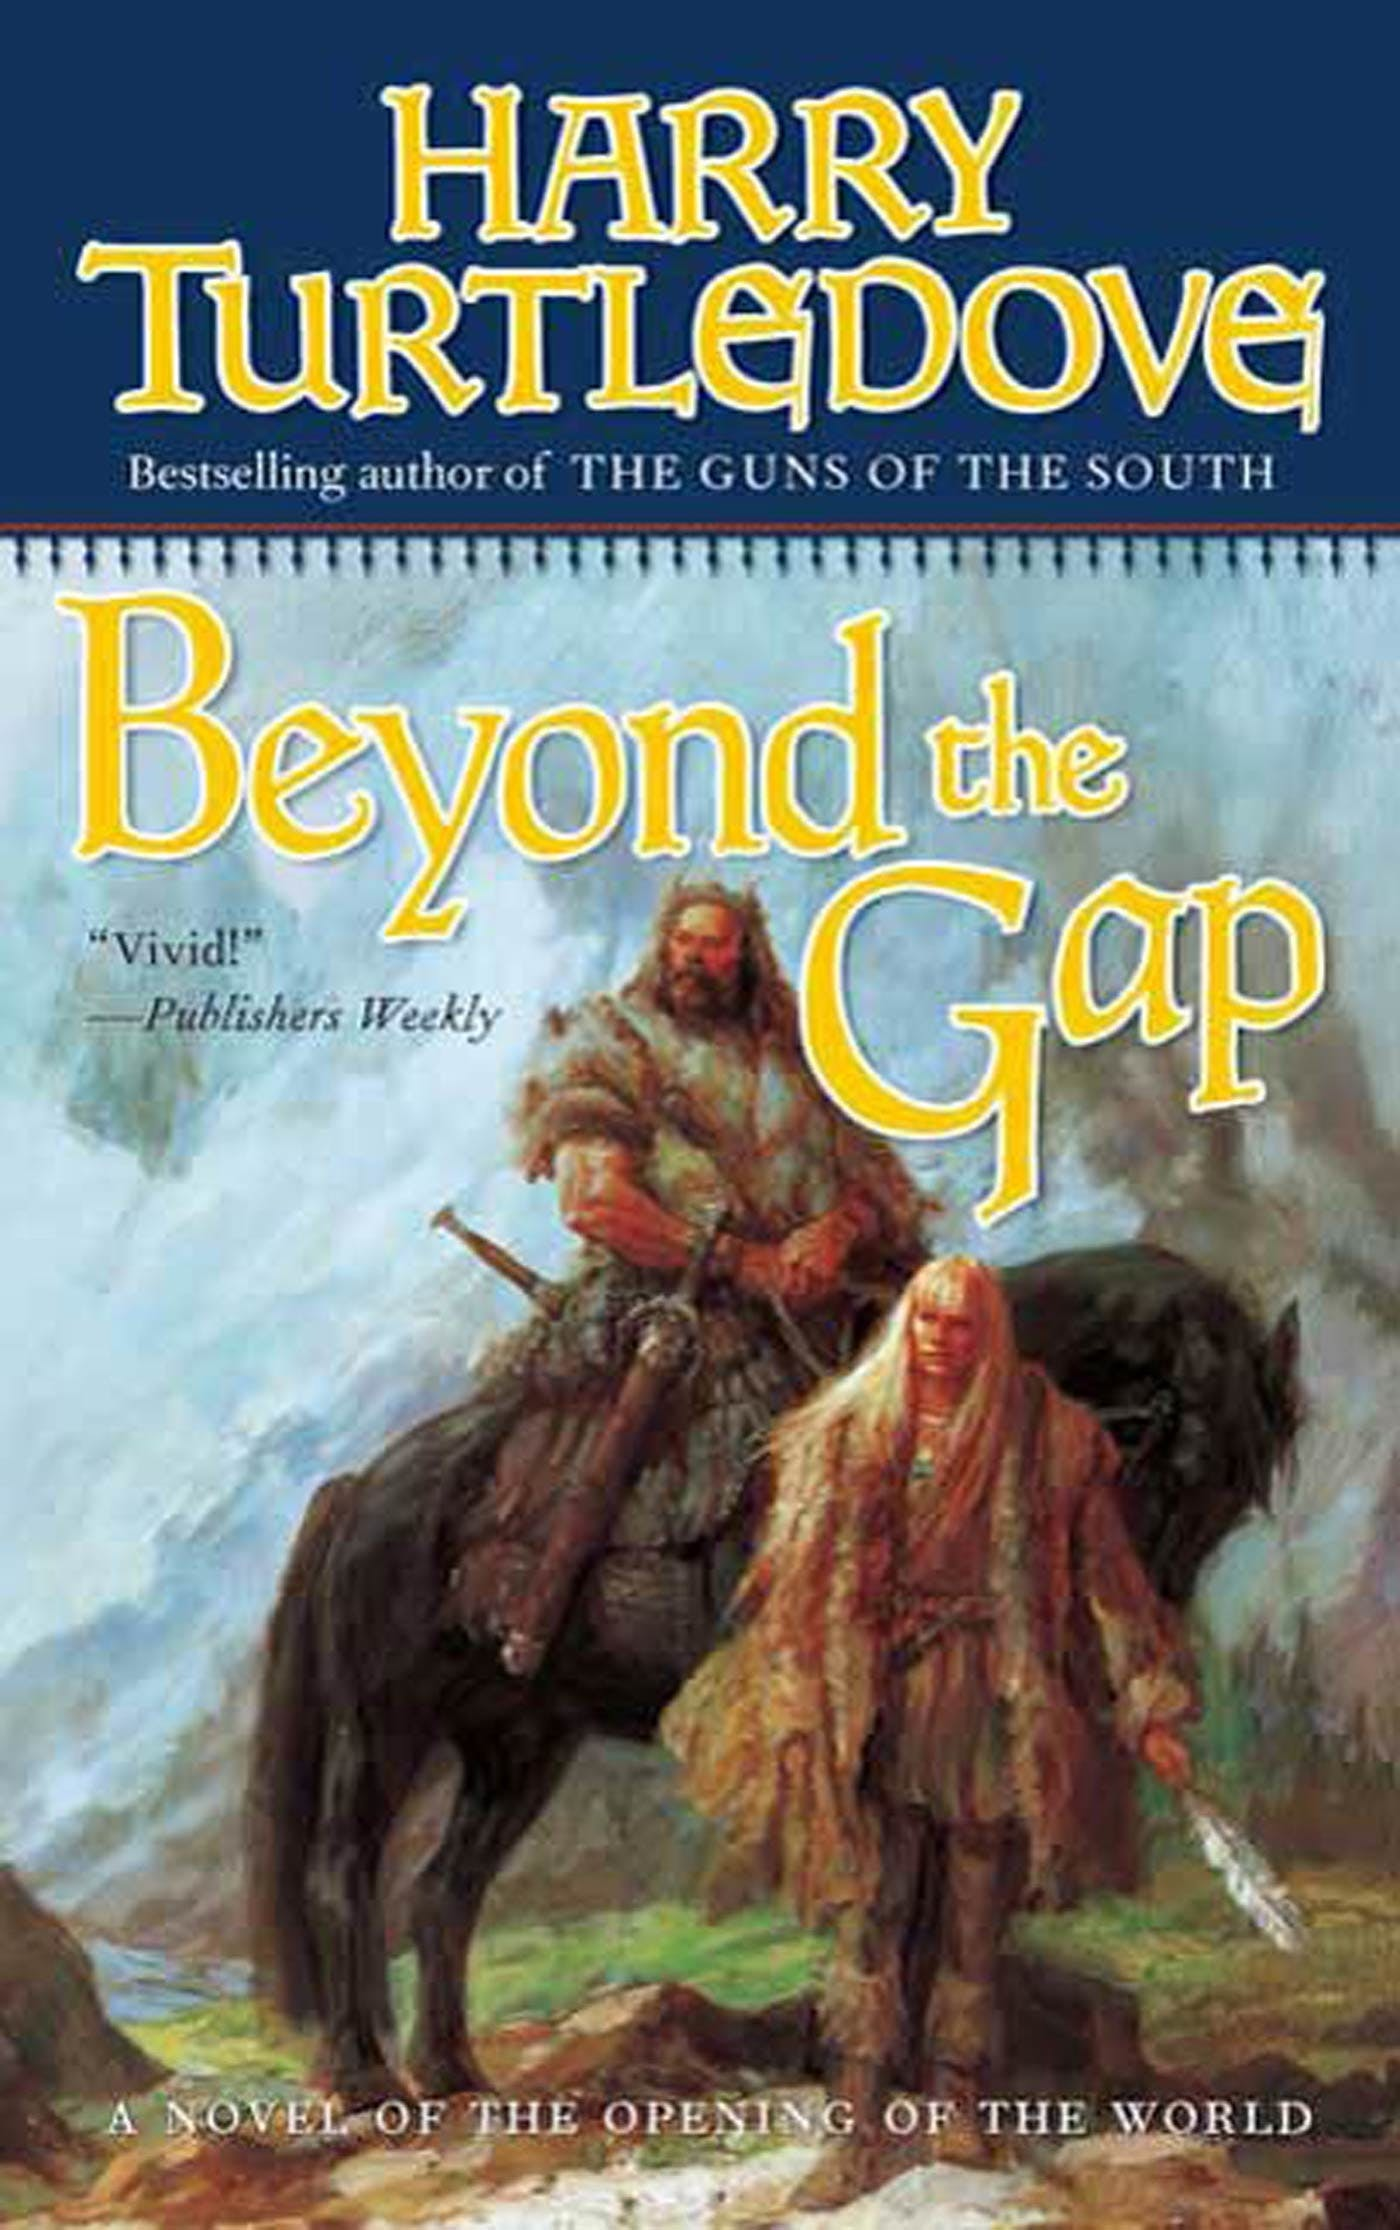 Image of Beyond the Gap